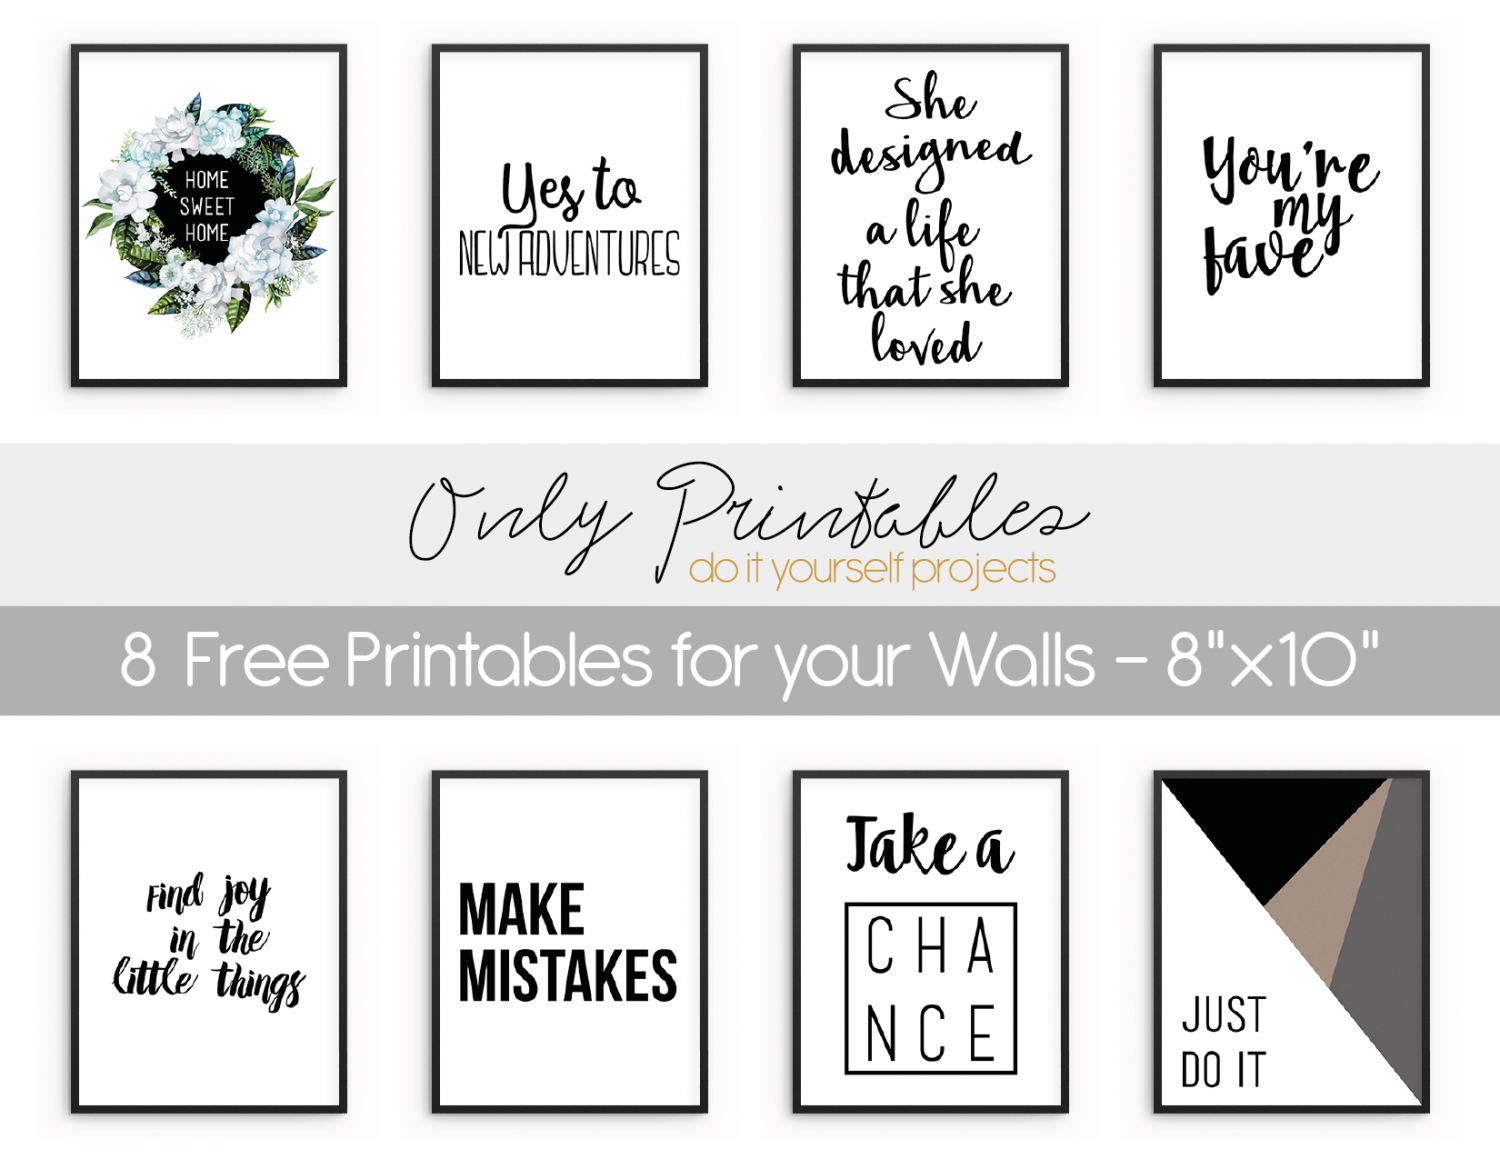 Only Printables | 8 Free Printables For Your Walls - Free Printable Art